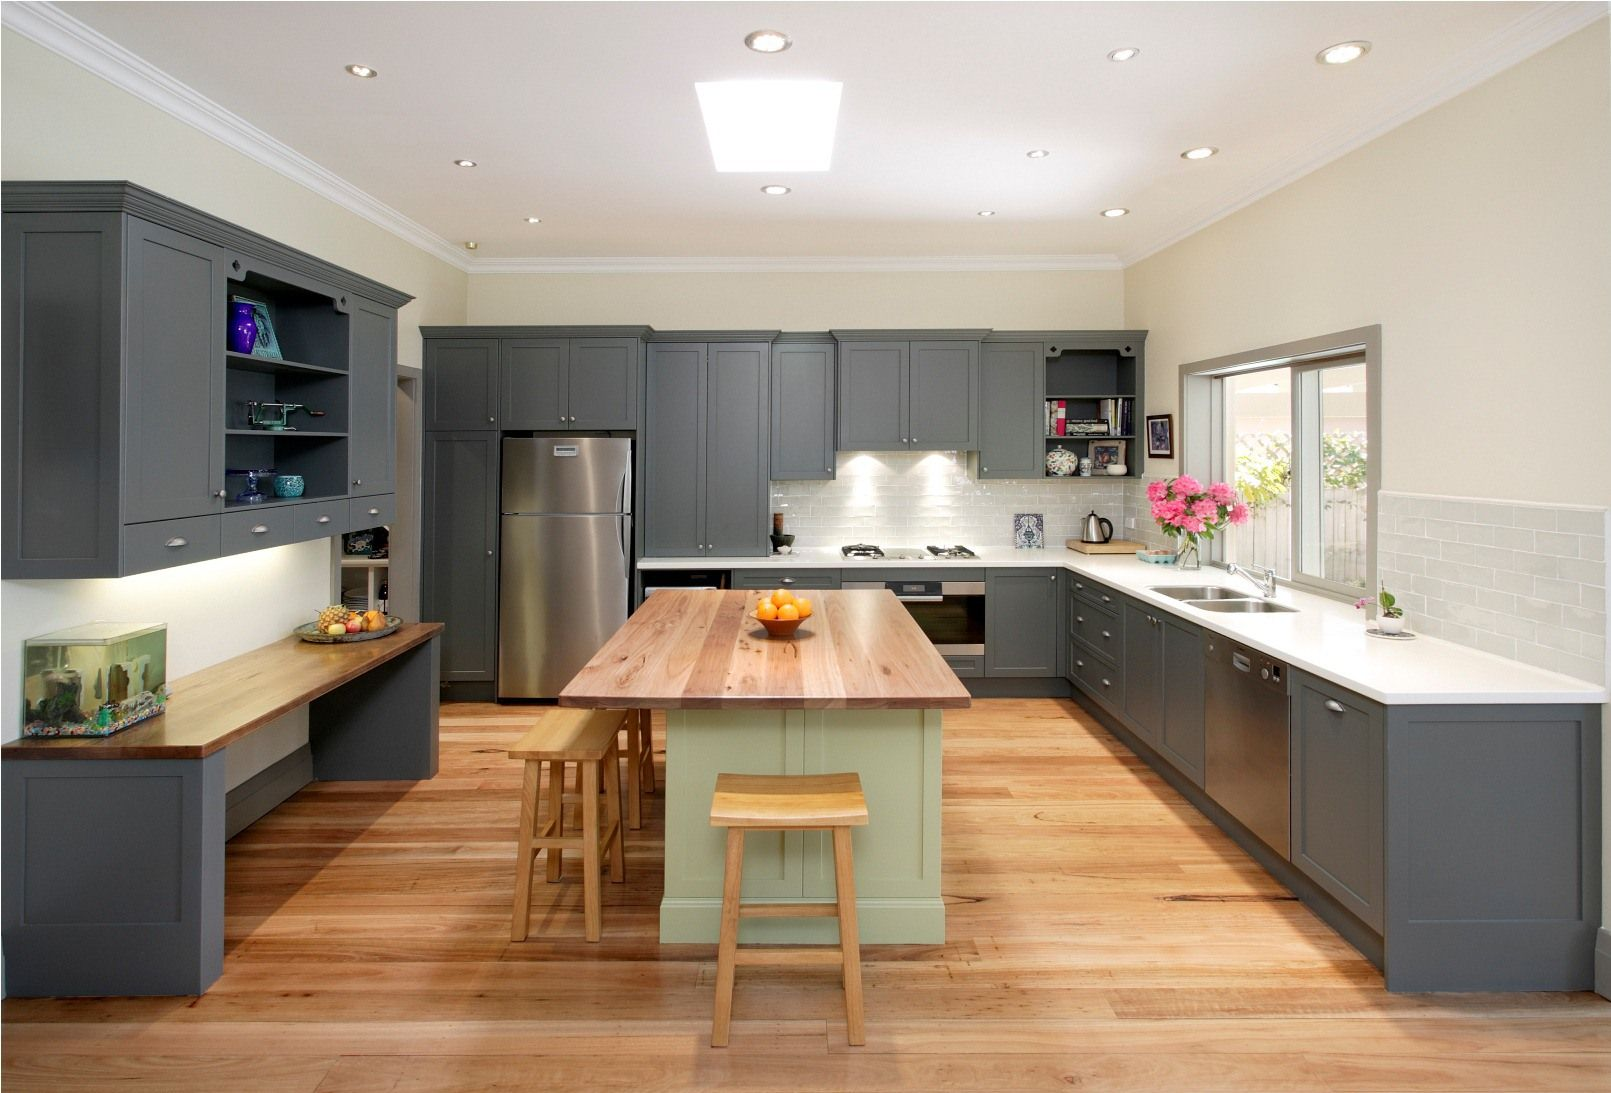 Coordinating Kitchen Flooring And Cabinets Home Design And Plans Pictures Modern Grey Kitchen Contemporary Kitchen Design Contemporary Kitchen